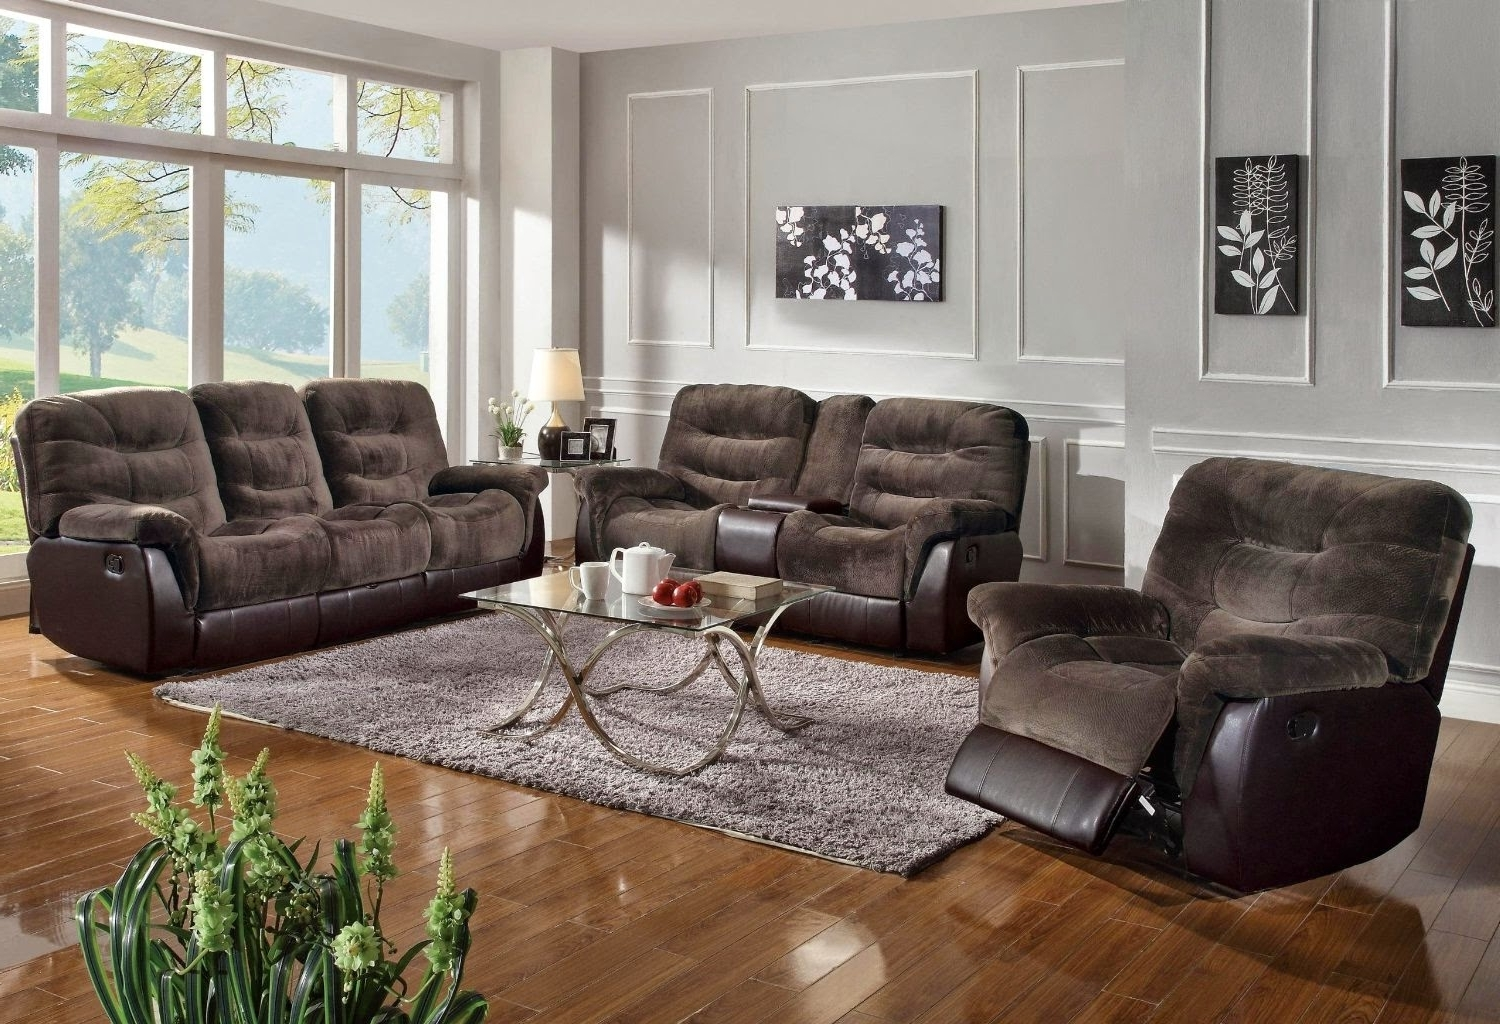 Leather Sectional Couches For Small Spaces – Saomc (View 20 of 20)